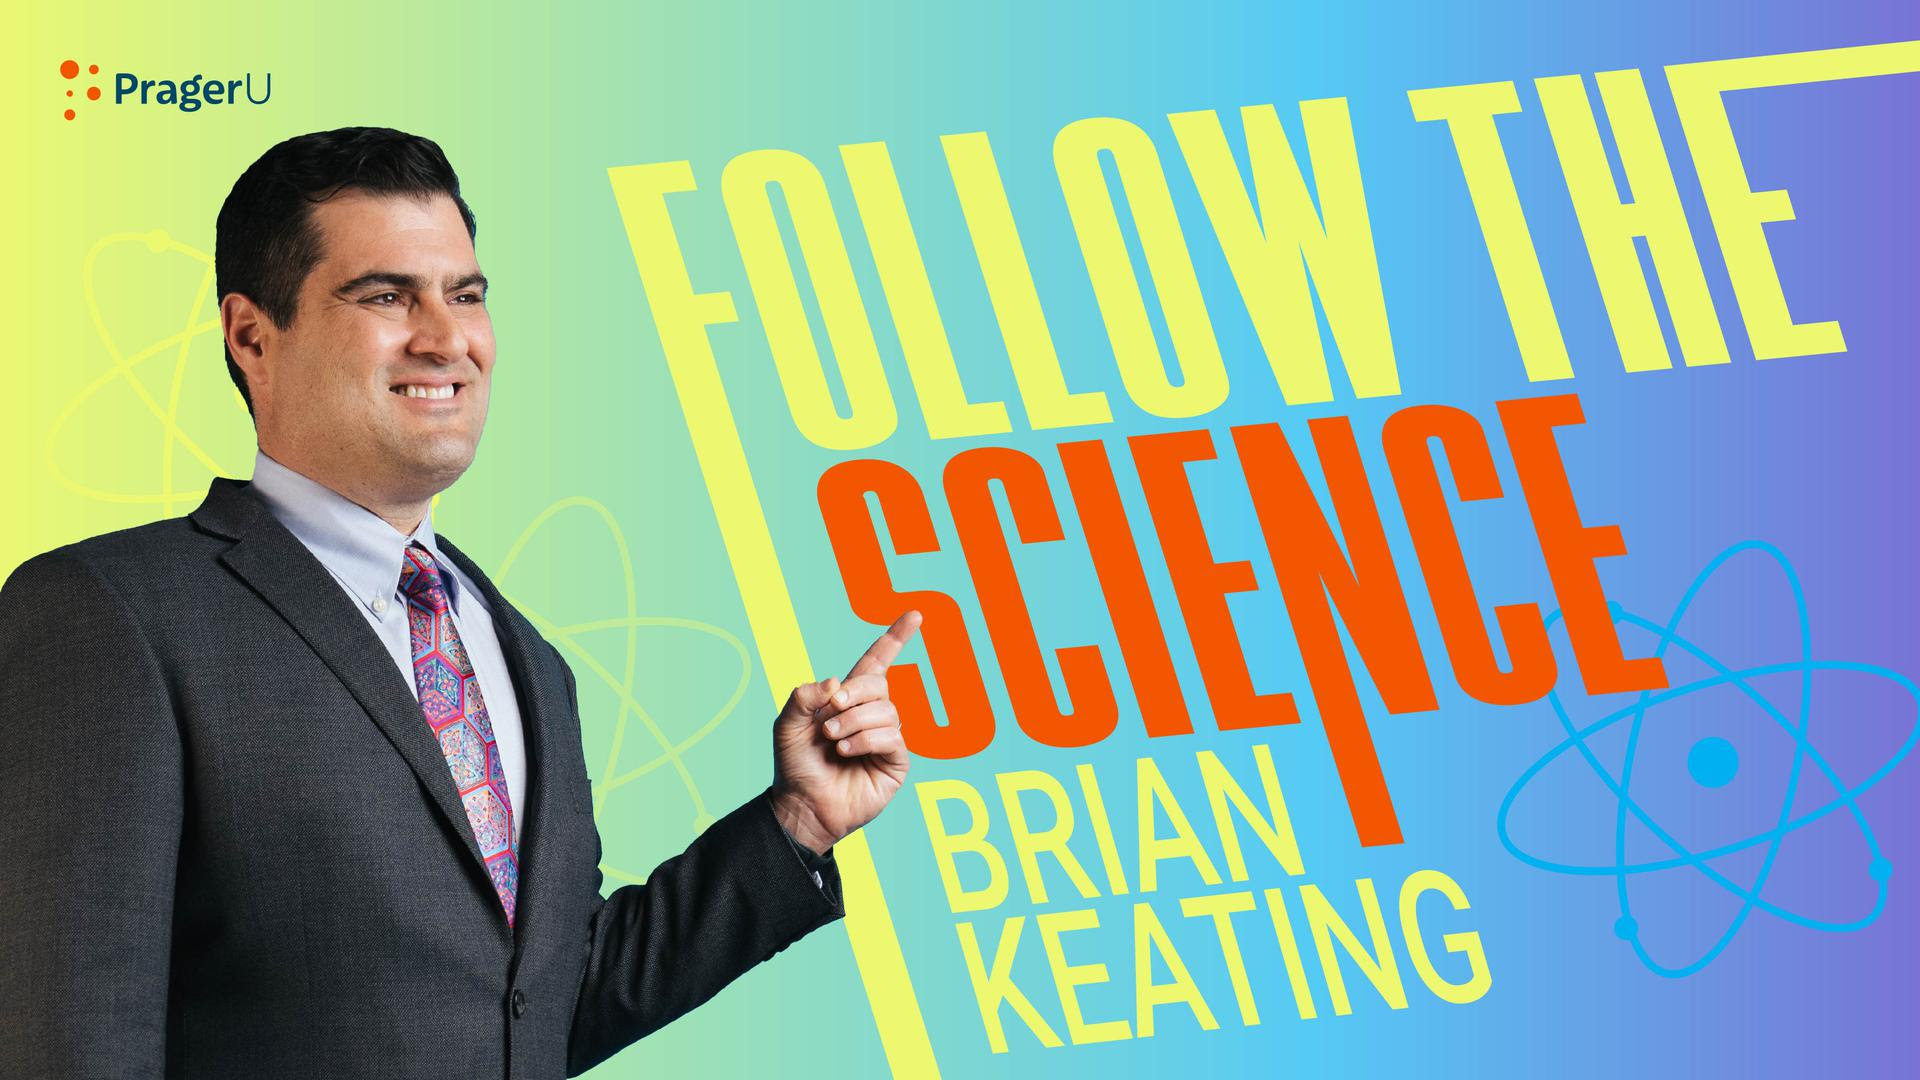 Brian Keating Follow the Science